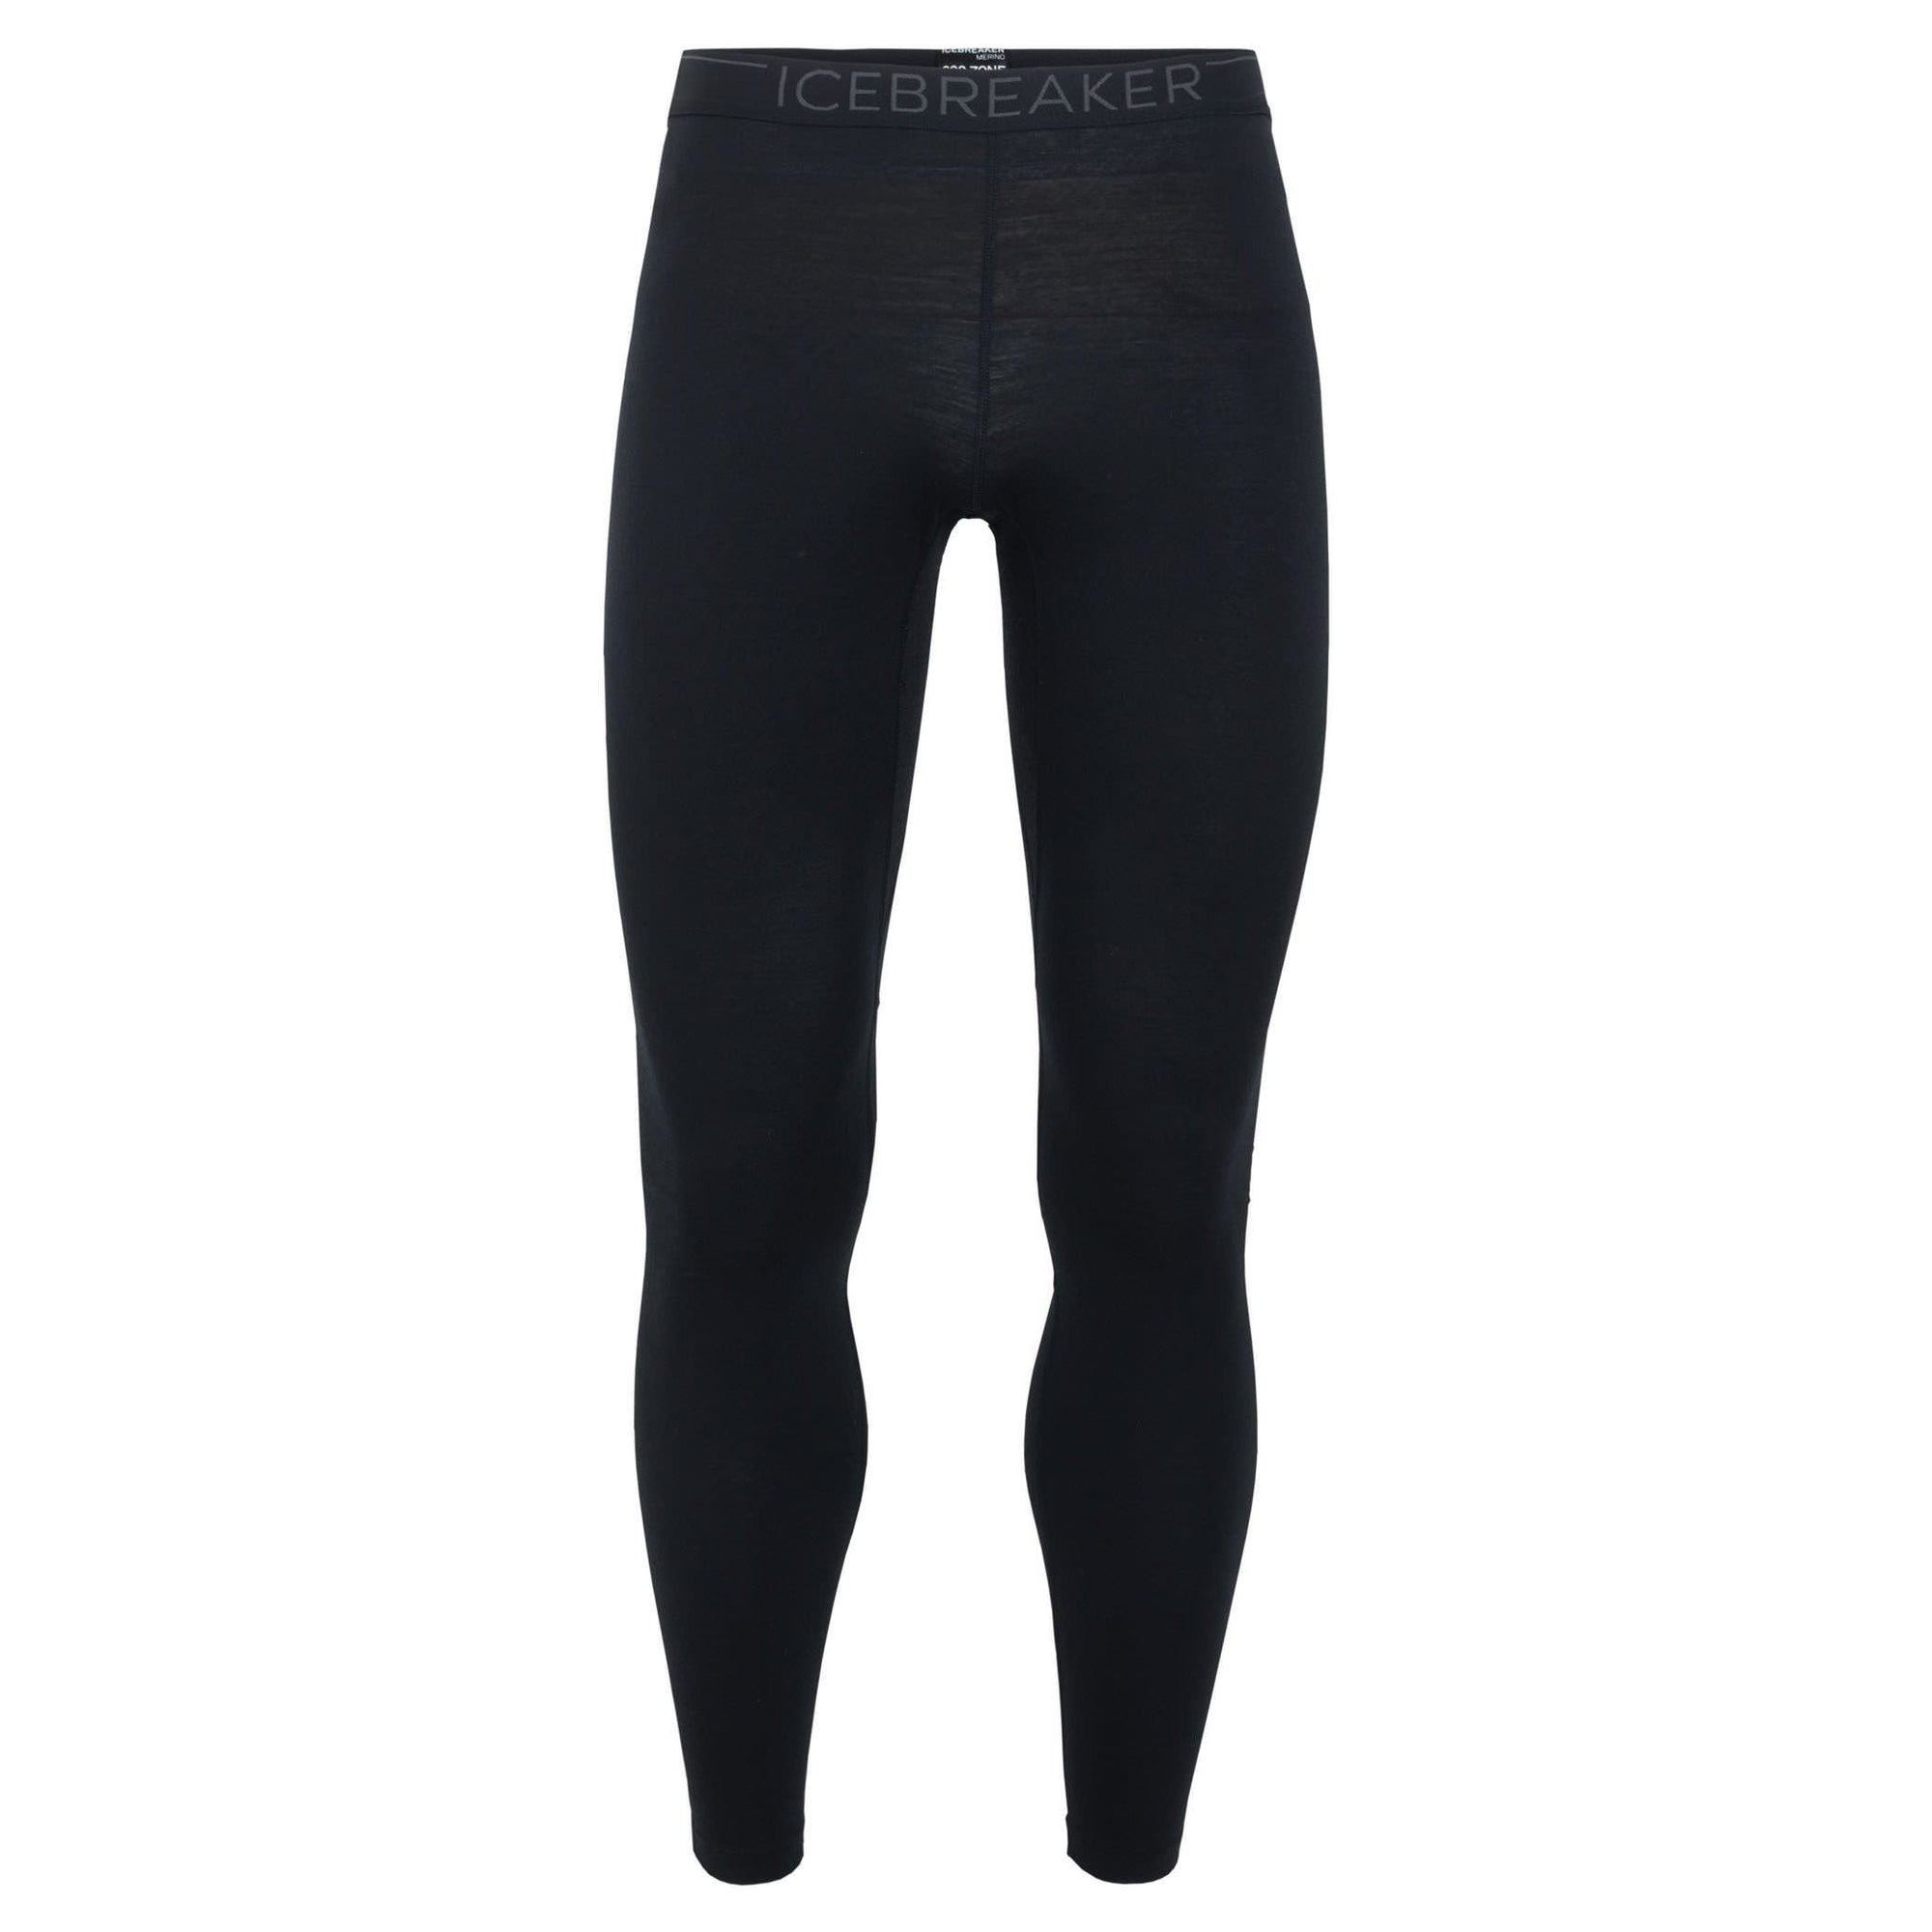 Icebreaker 2020 Men's 260 Tech Leggings w/Fly Baselayer